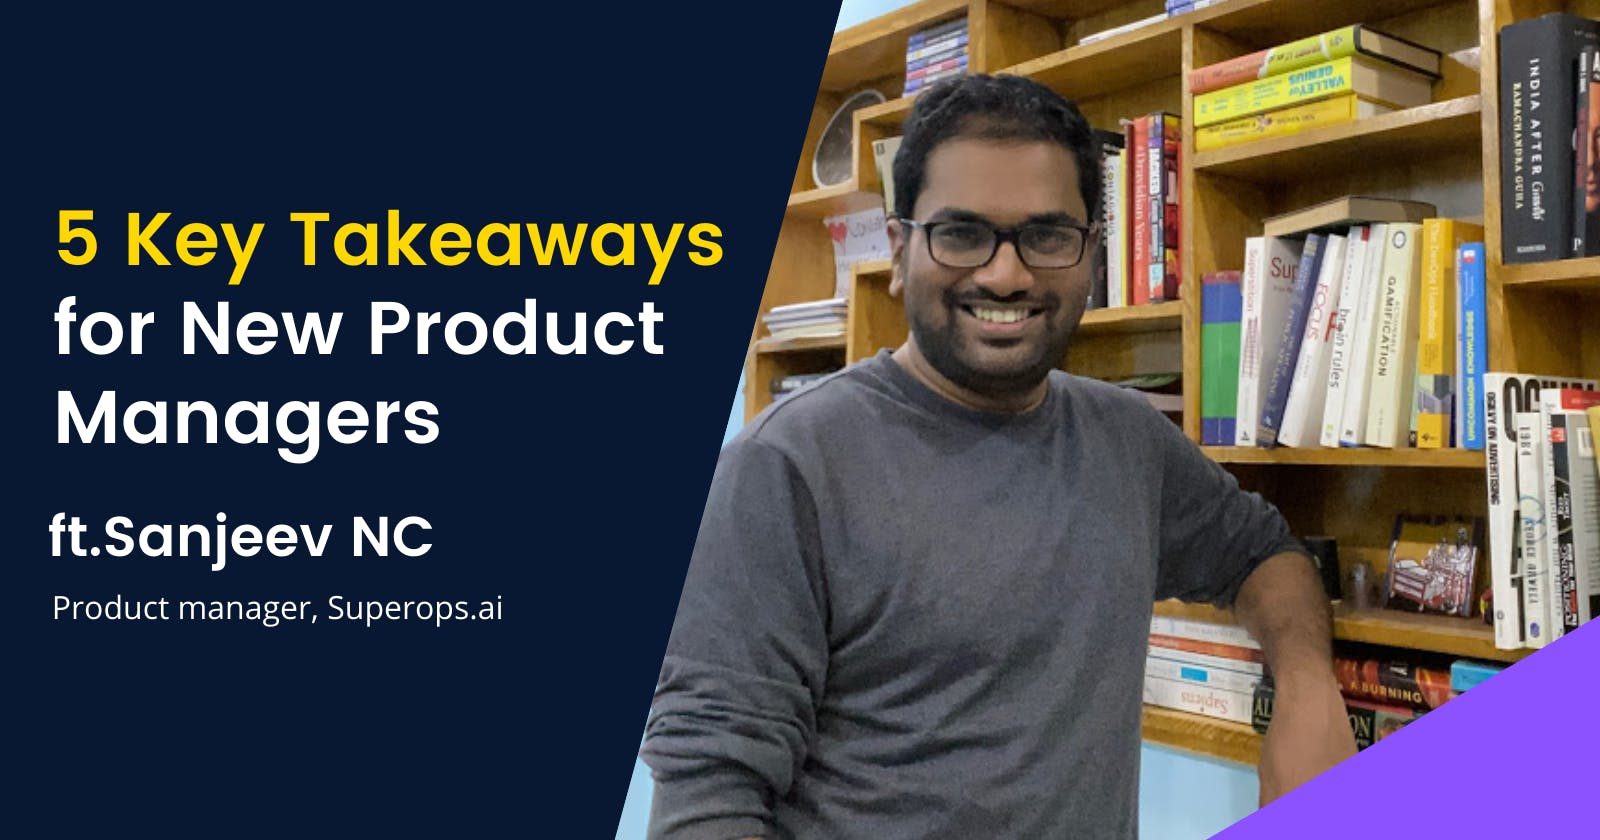 5 Key Takeaways for new product managers